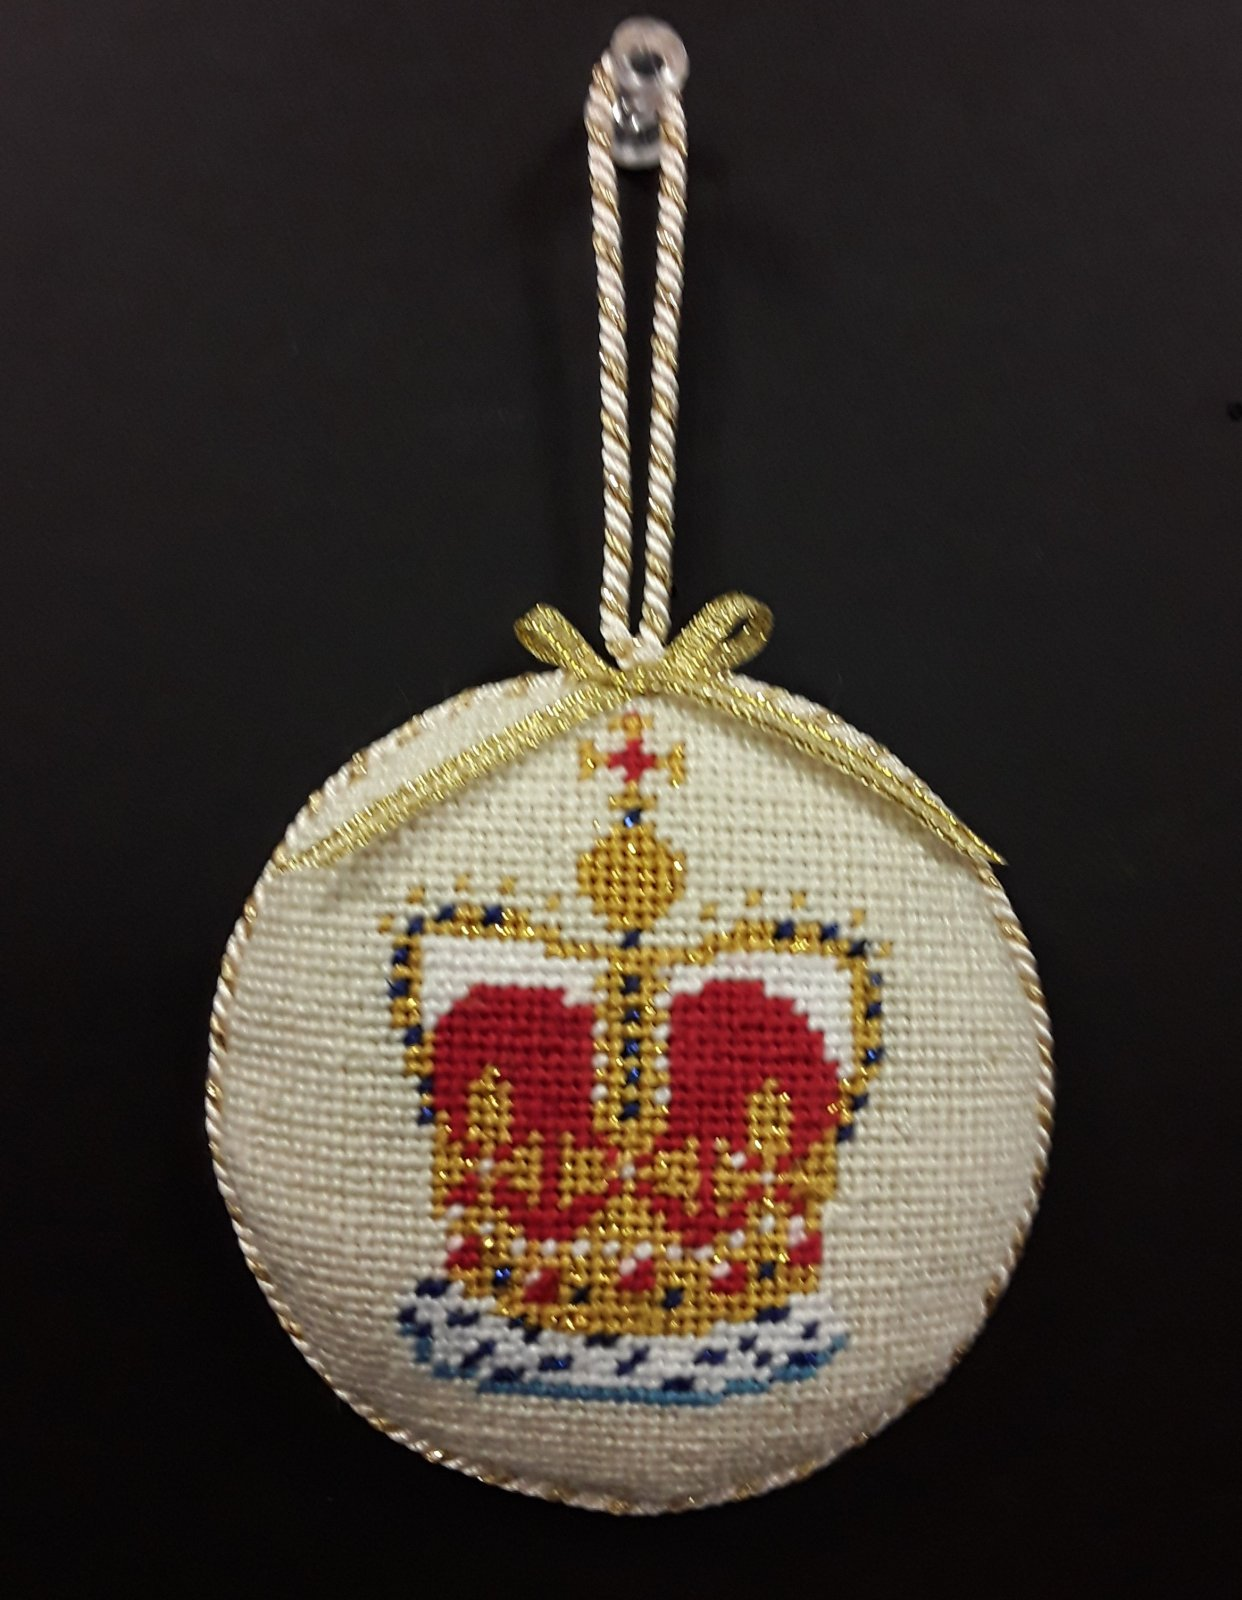 British Crown Ornament - Stitched By Barbara K.